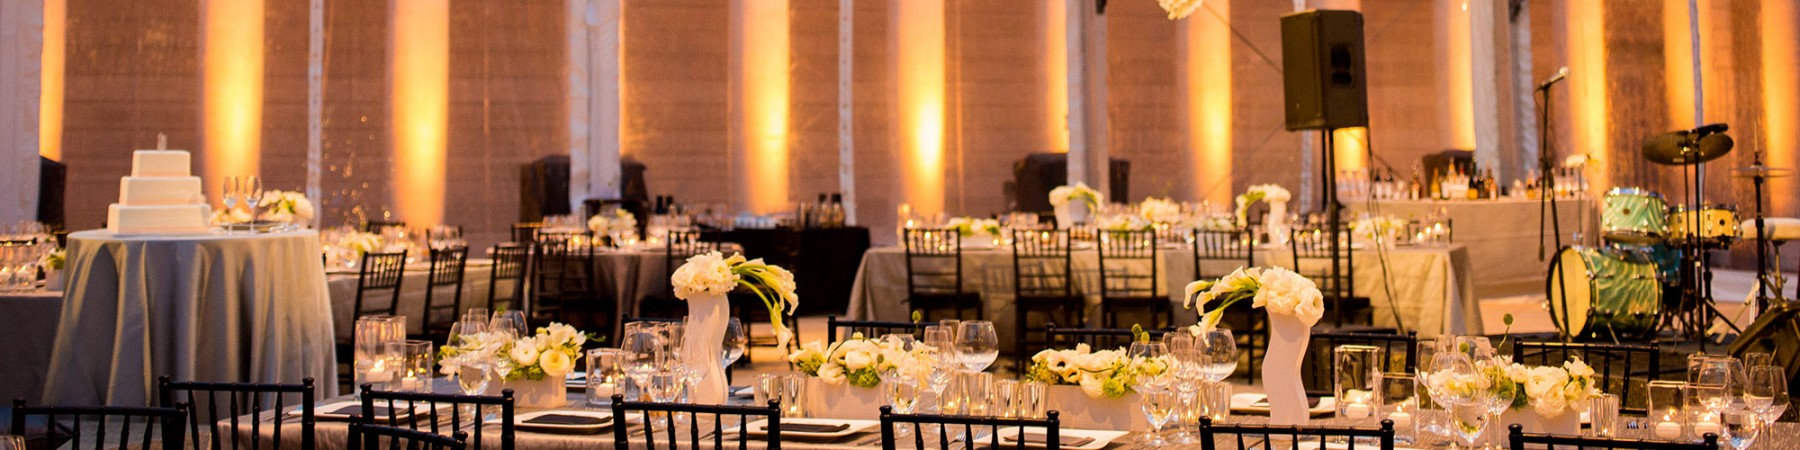 Wedding Private Event Rental Spaces Legion Of Honor